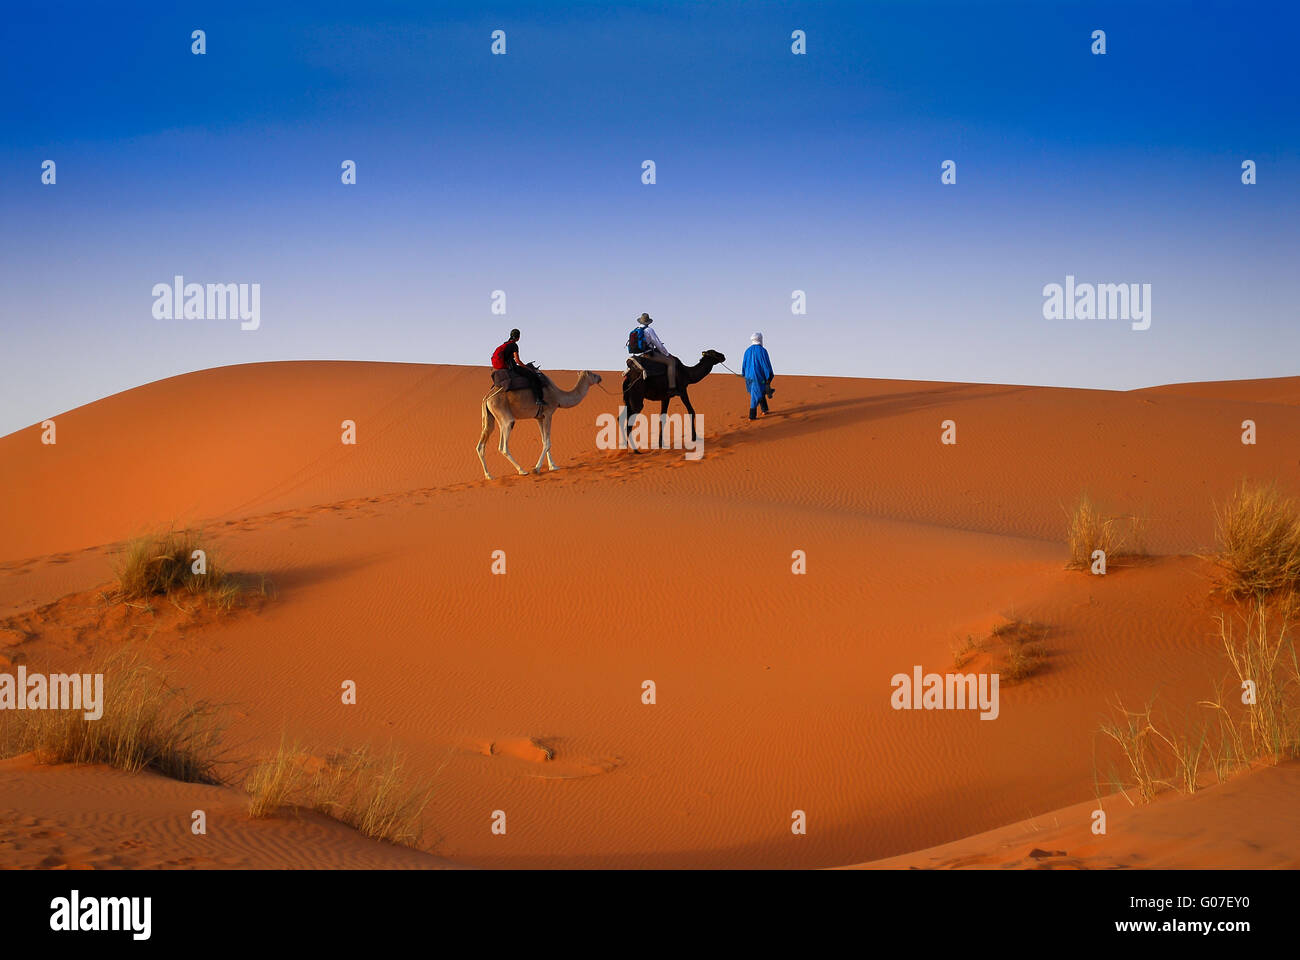 Dromader caravan crossing red sands of Sahara Dese - Stock Image